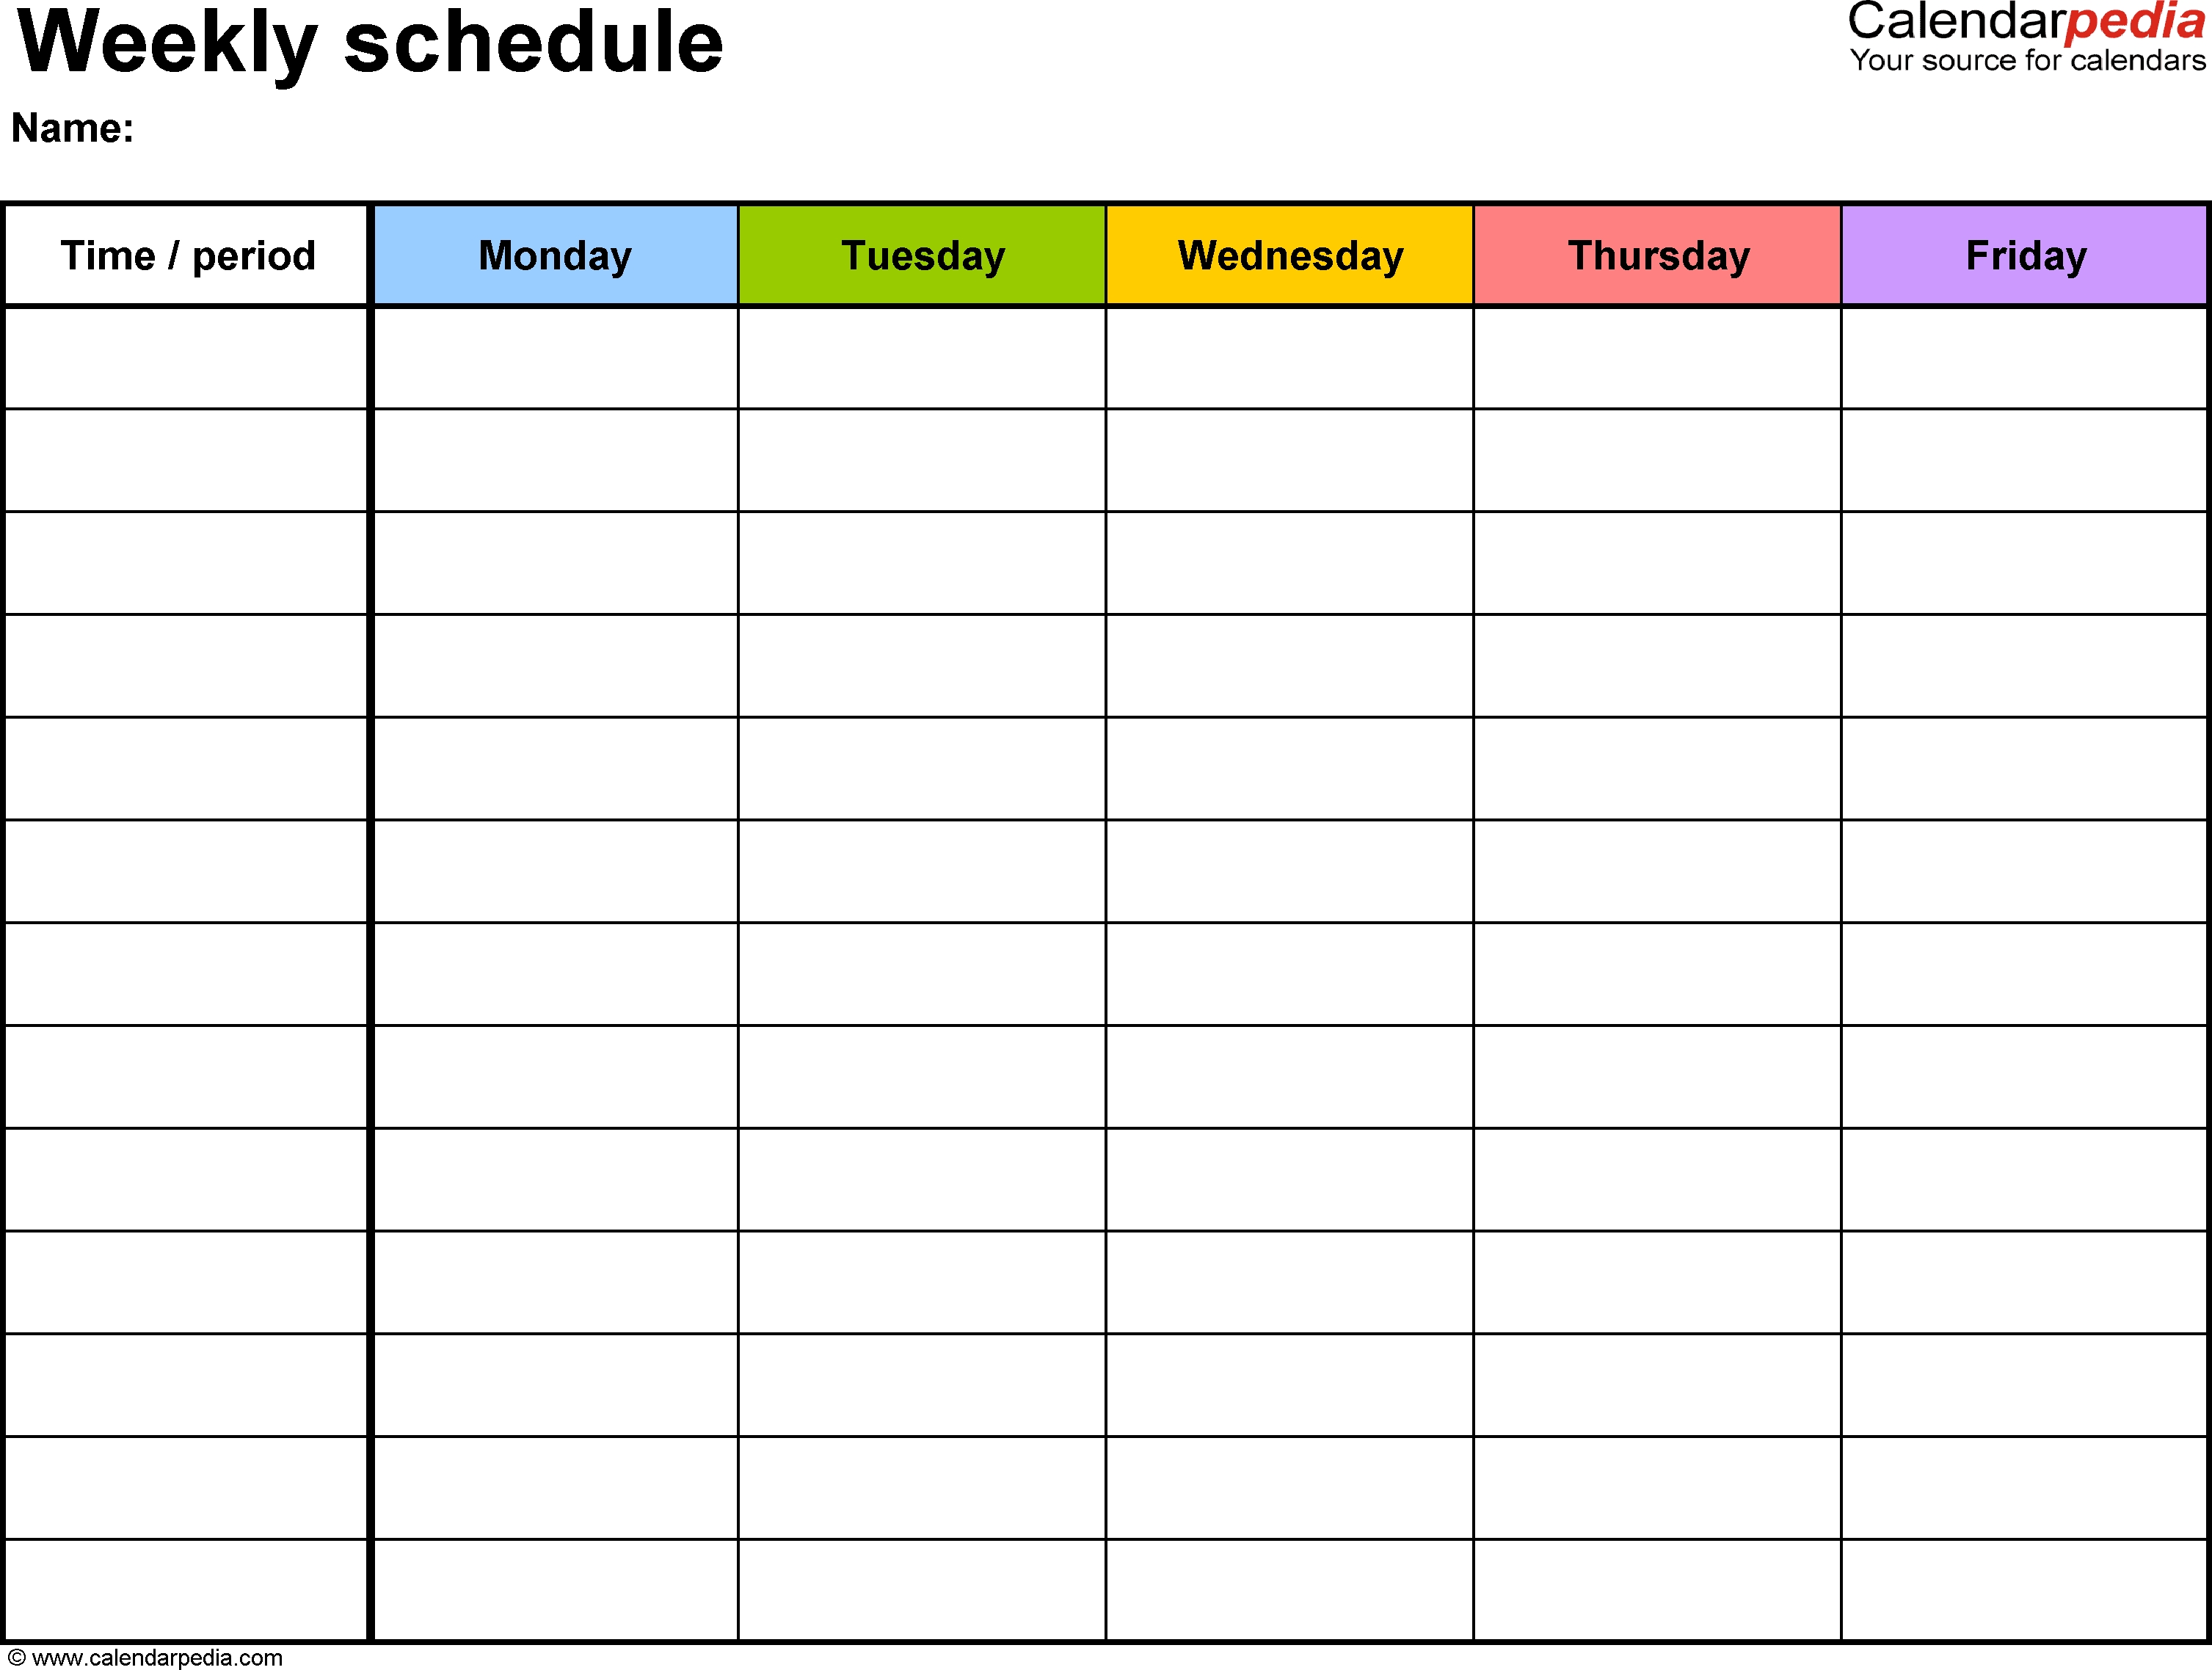 Free Weekly Schedule Templates For Word - 18 Templates for Blank Calendar Template Monday To Friday Only